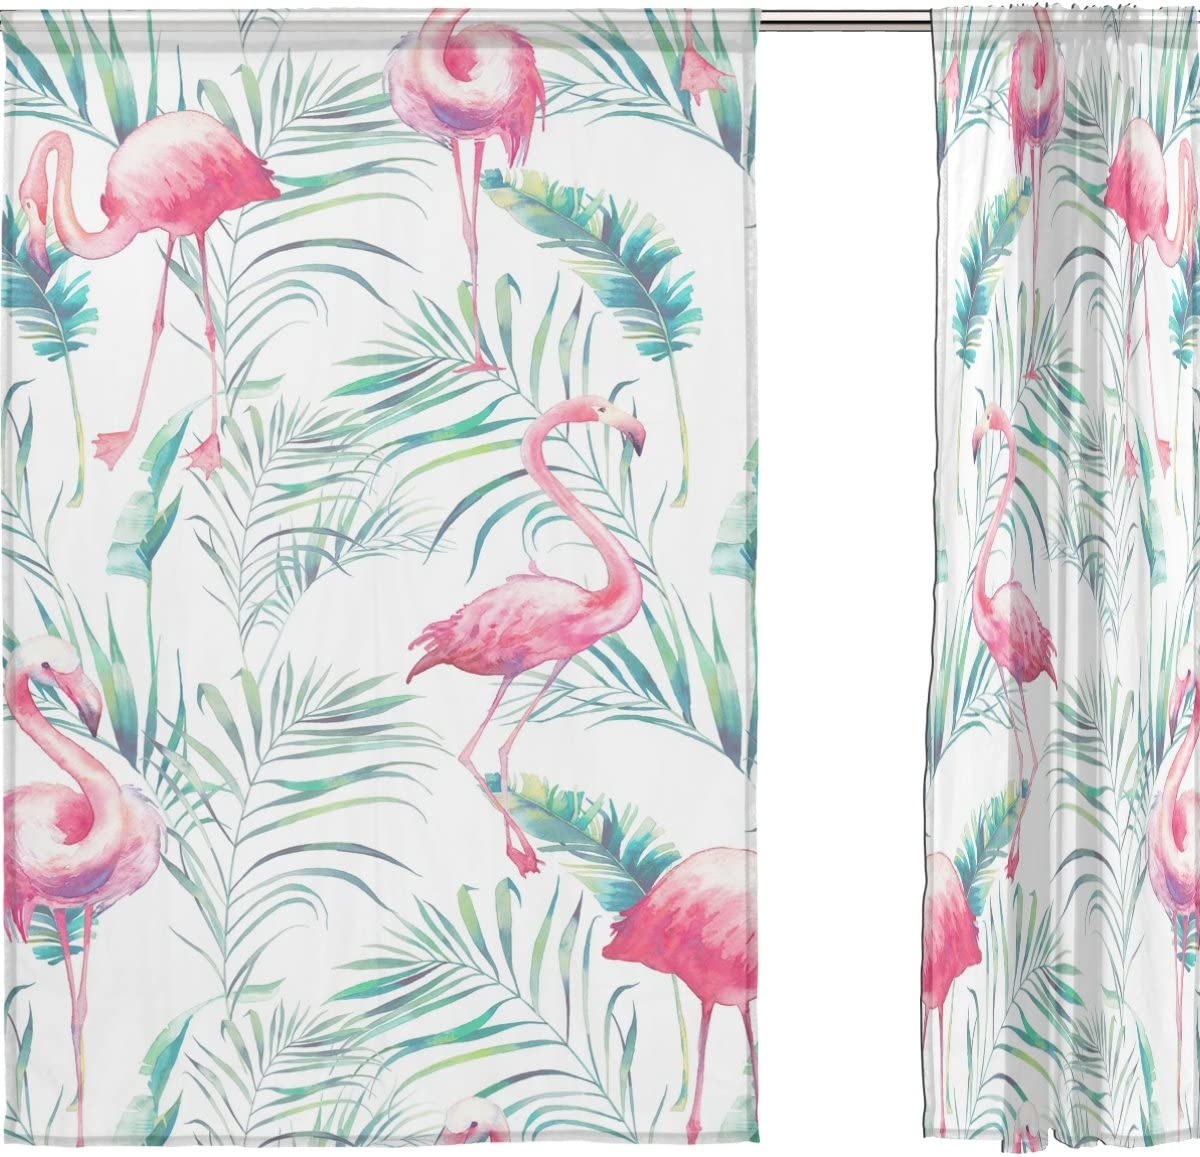 INGBAGS Watercolor Flamingo and Tropical Leaves Voile Window Long Sheer Curtain 2 Panels Cat with Butterfly Scenery Print Tulle Polyester for Door Window Room Decoration 55×78 Inch,Set of 2